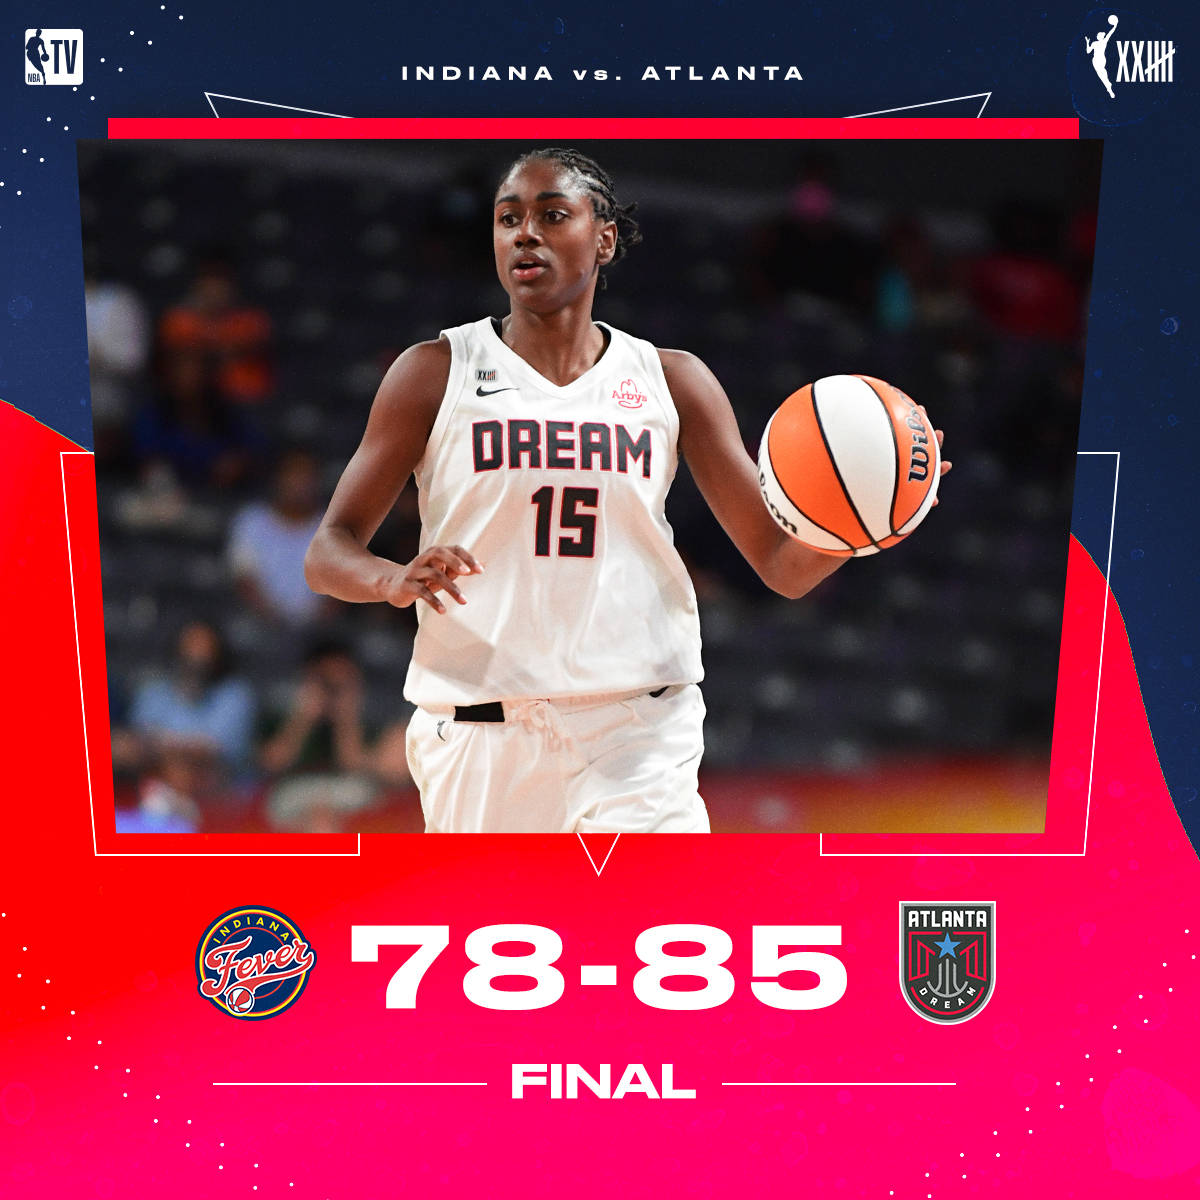 The @AtlantaDream get the win behind 31 PTS by Tiffany Hayes 👏